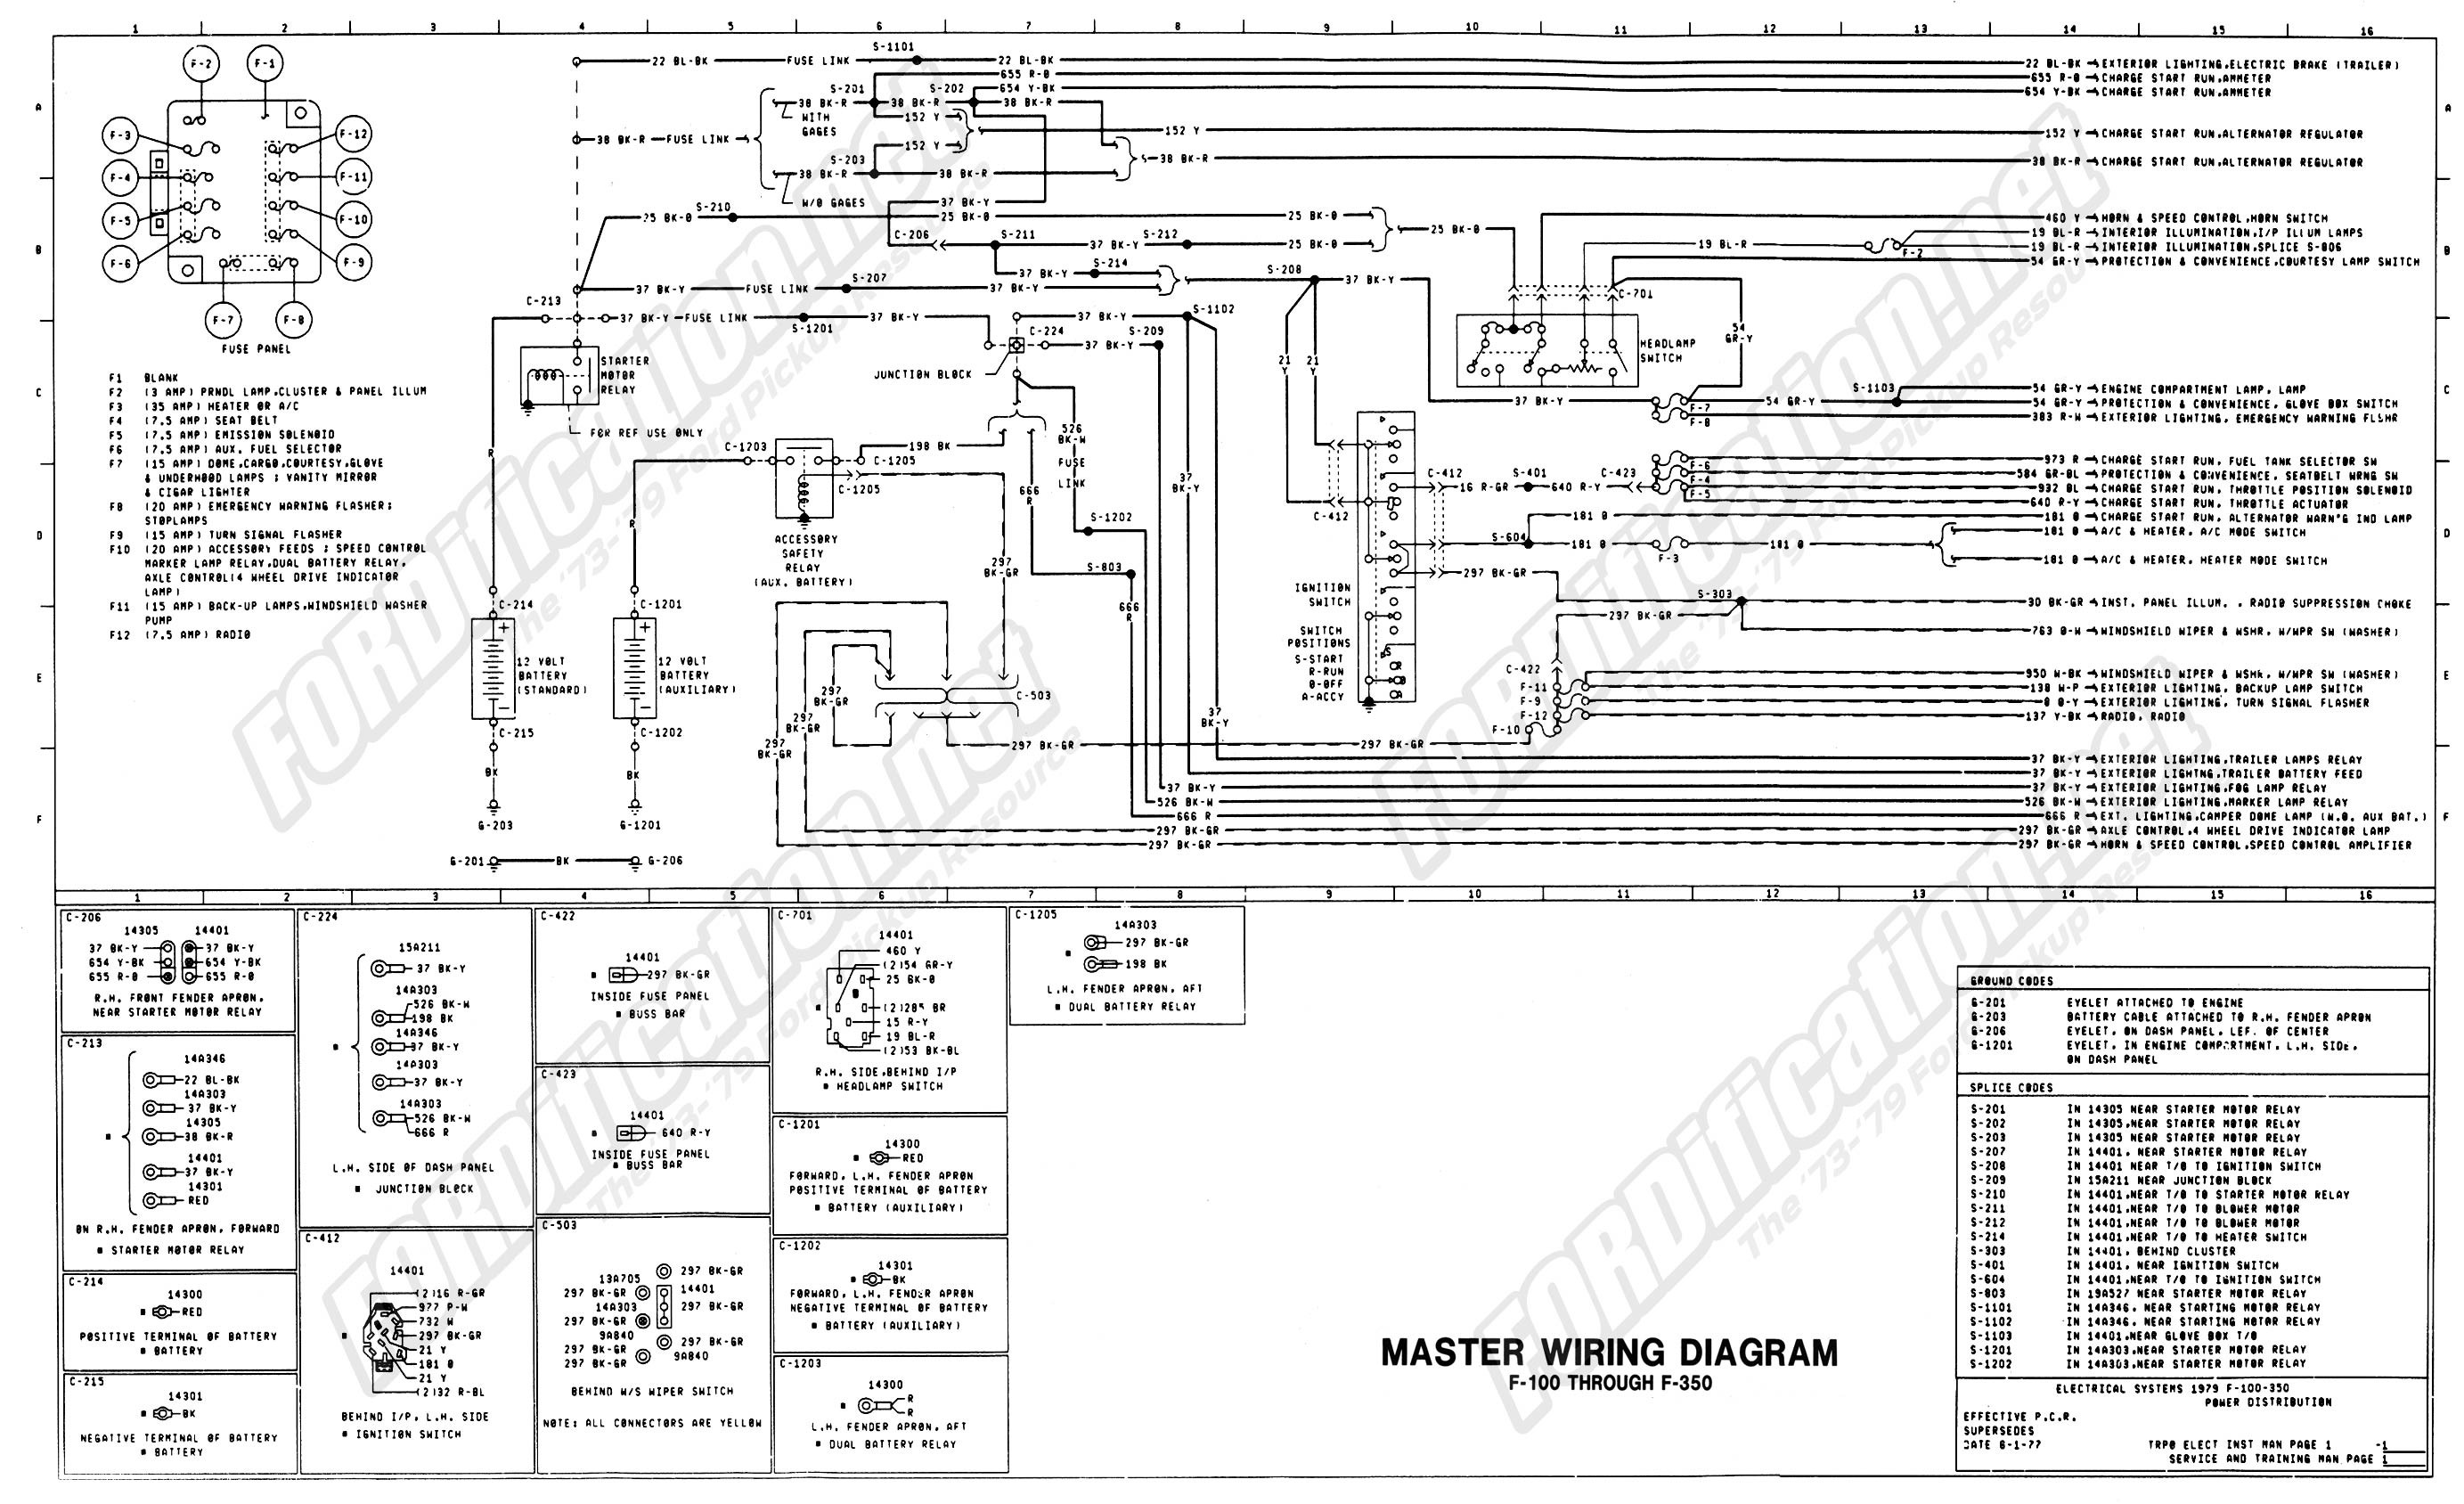 Ford Tail Light Wiring Diagram 2004 Dodge Ram Tail Lights ...  Dodge Ram Tail Lights Wiring Diagram on